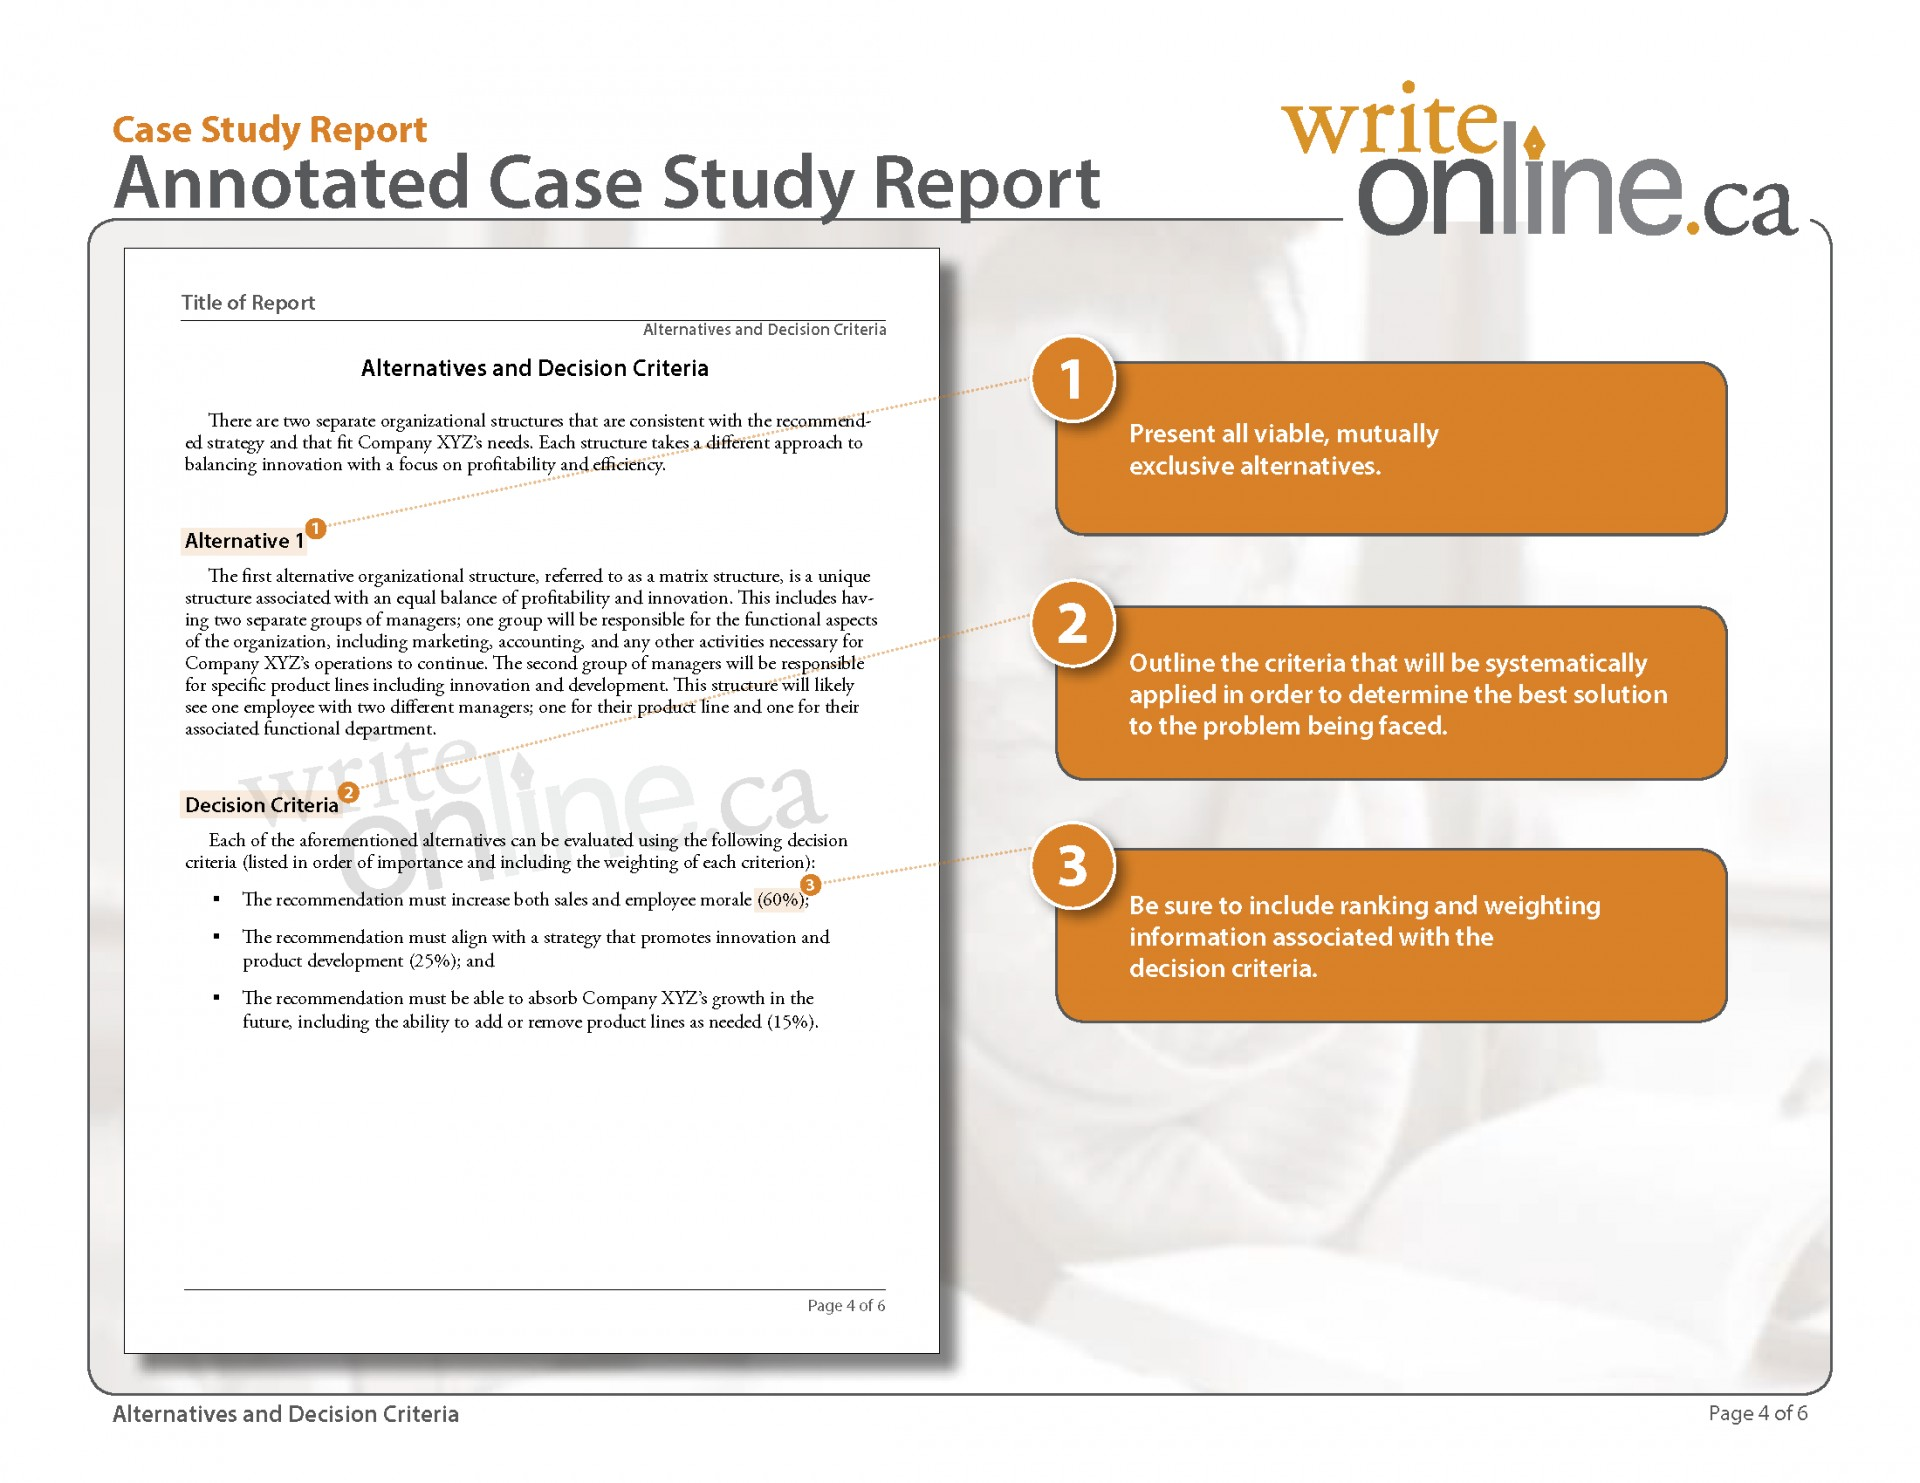 003 Research Paper Component Of Pdf Casestudy Annotatedfull Page 4 Archaicawful Parts Chapter 1 1-5 1920